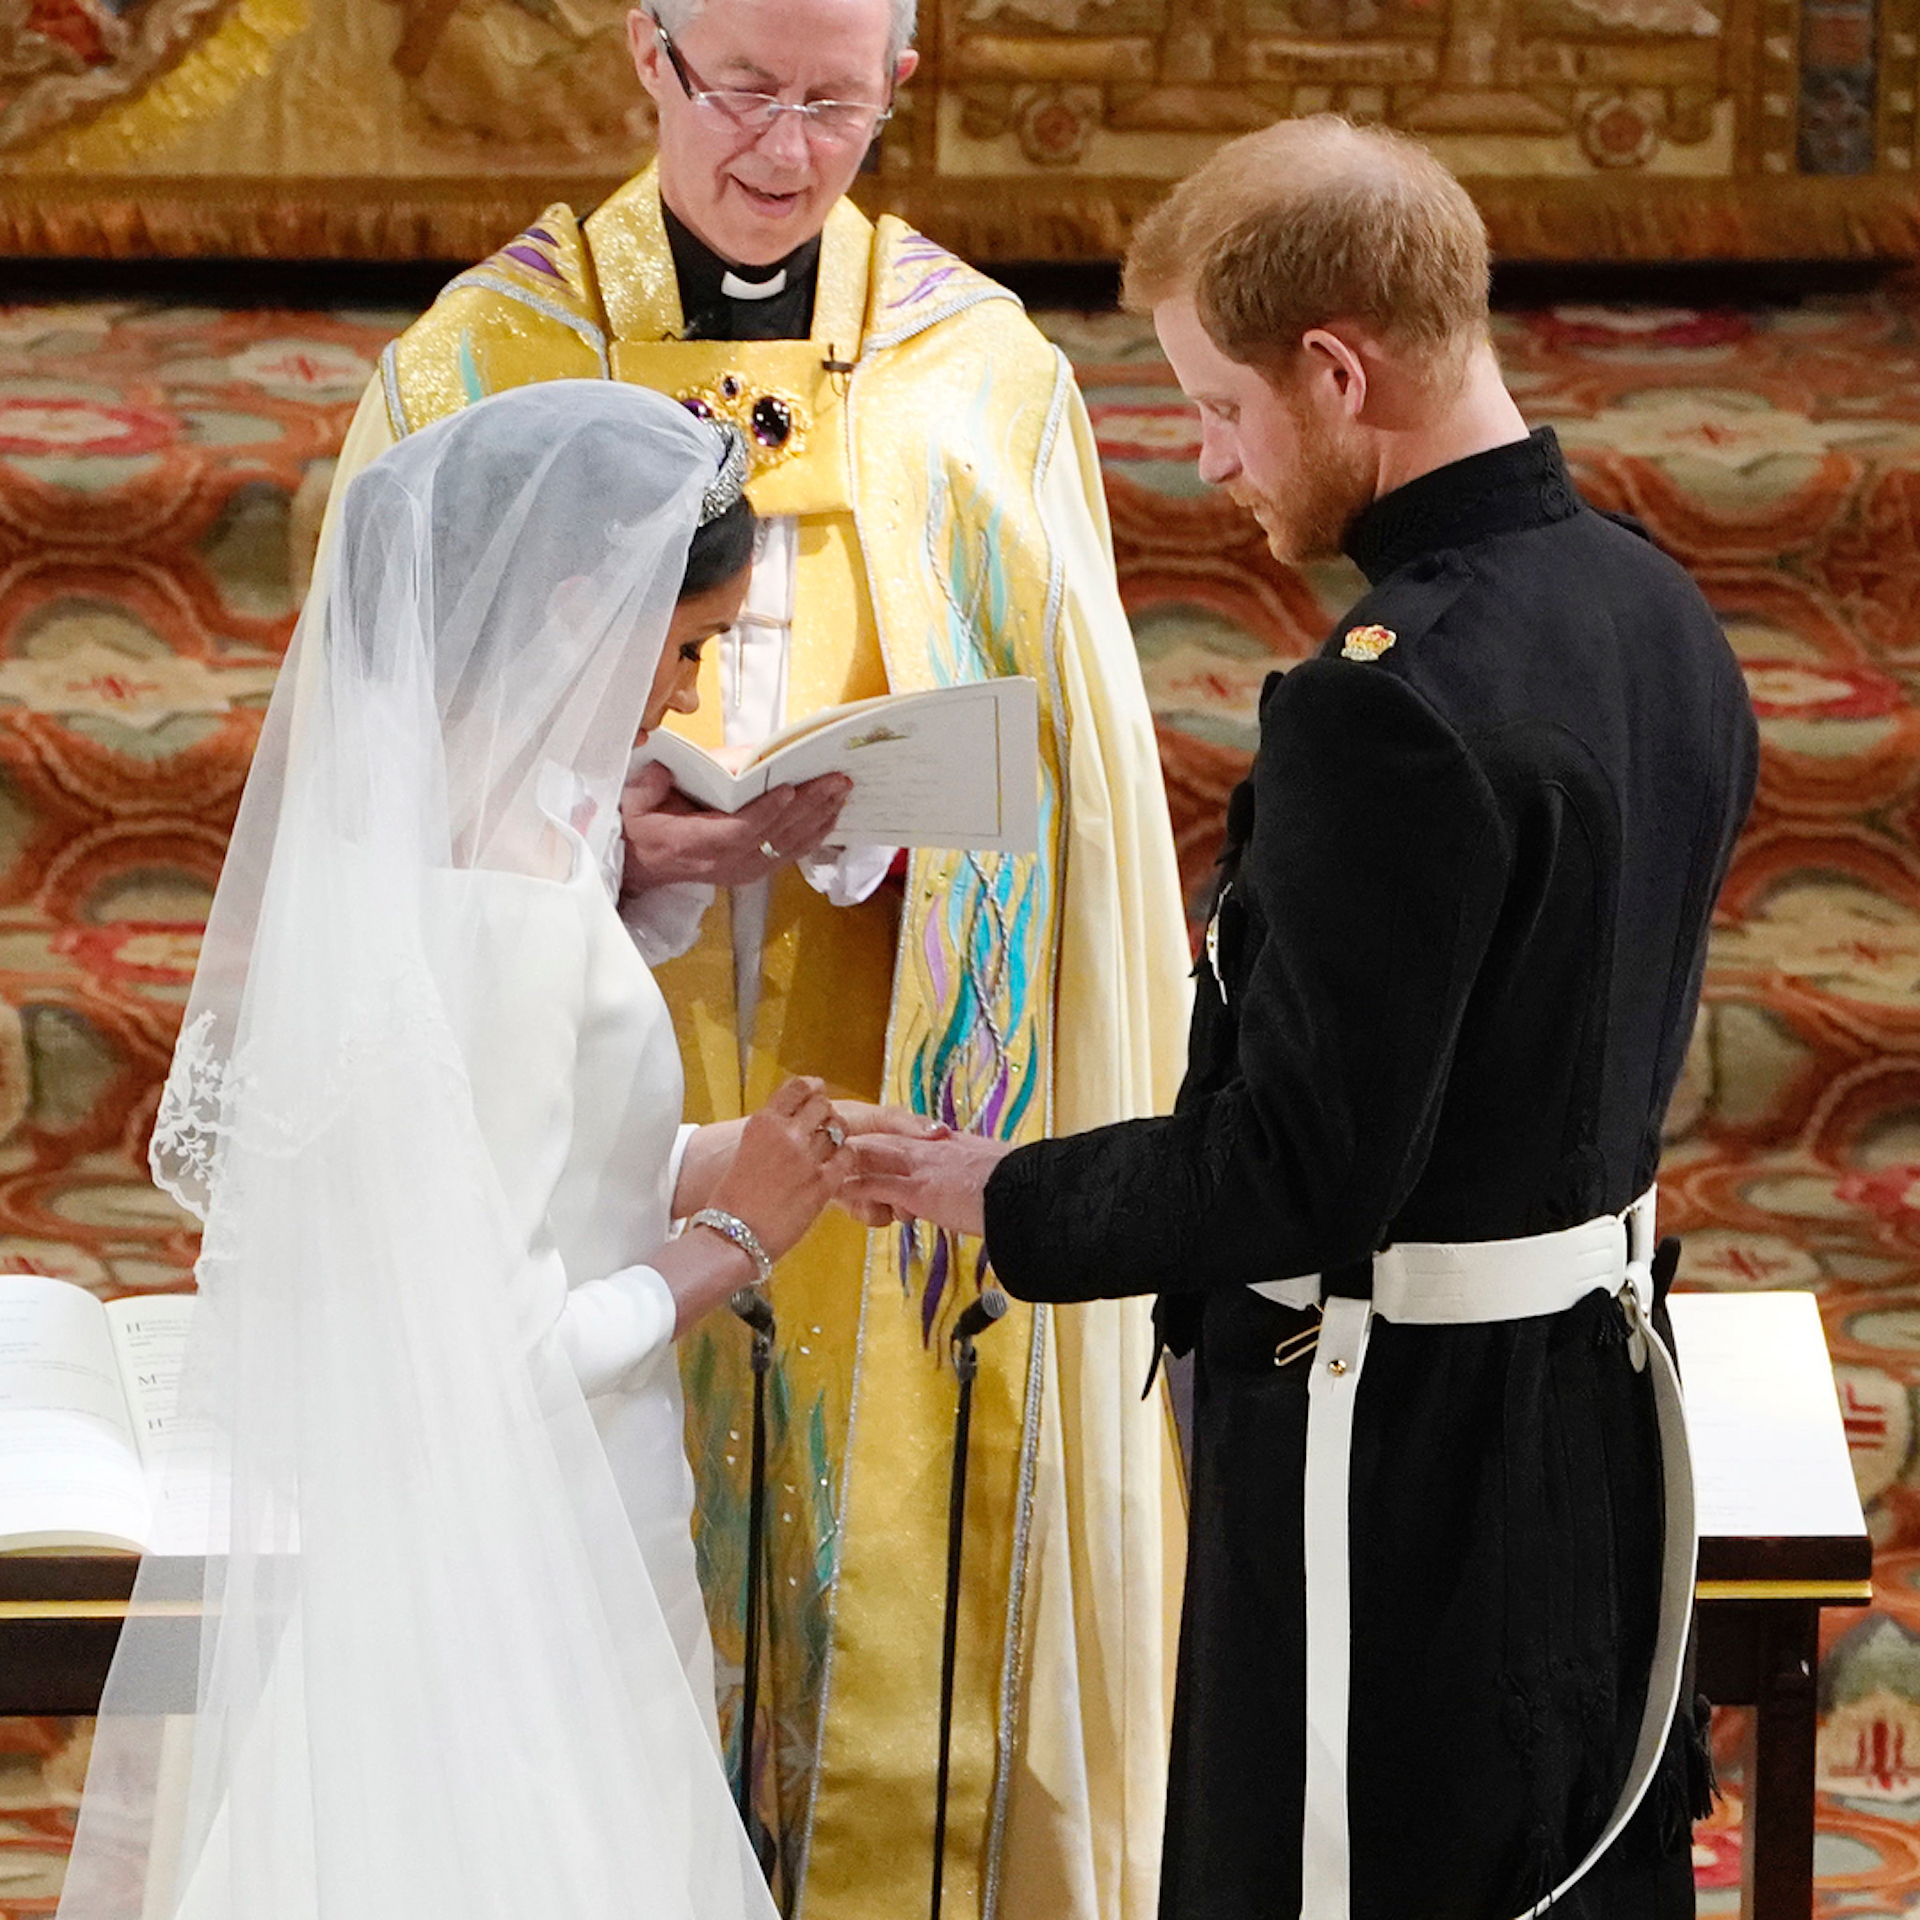 https://s3.amazonaws.com/arc-wordpress-client-uploads/infobae-wp/wp-content/uploads/2018/05/19180812/GENTE-boda-real-principe-harry-meghan-markle-alianzas.jpg